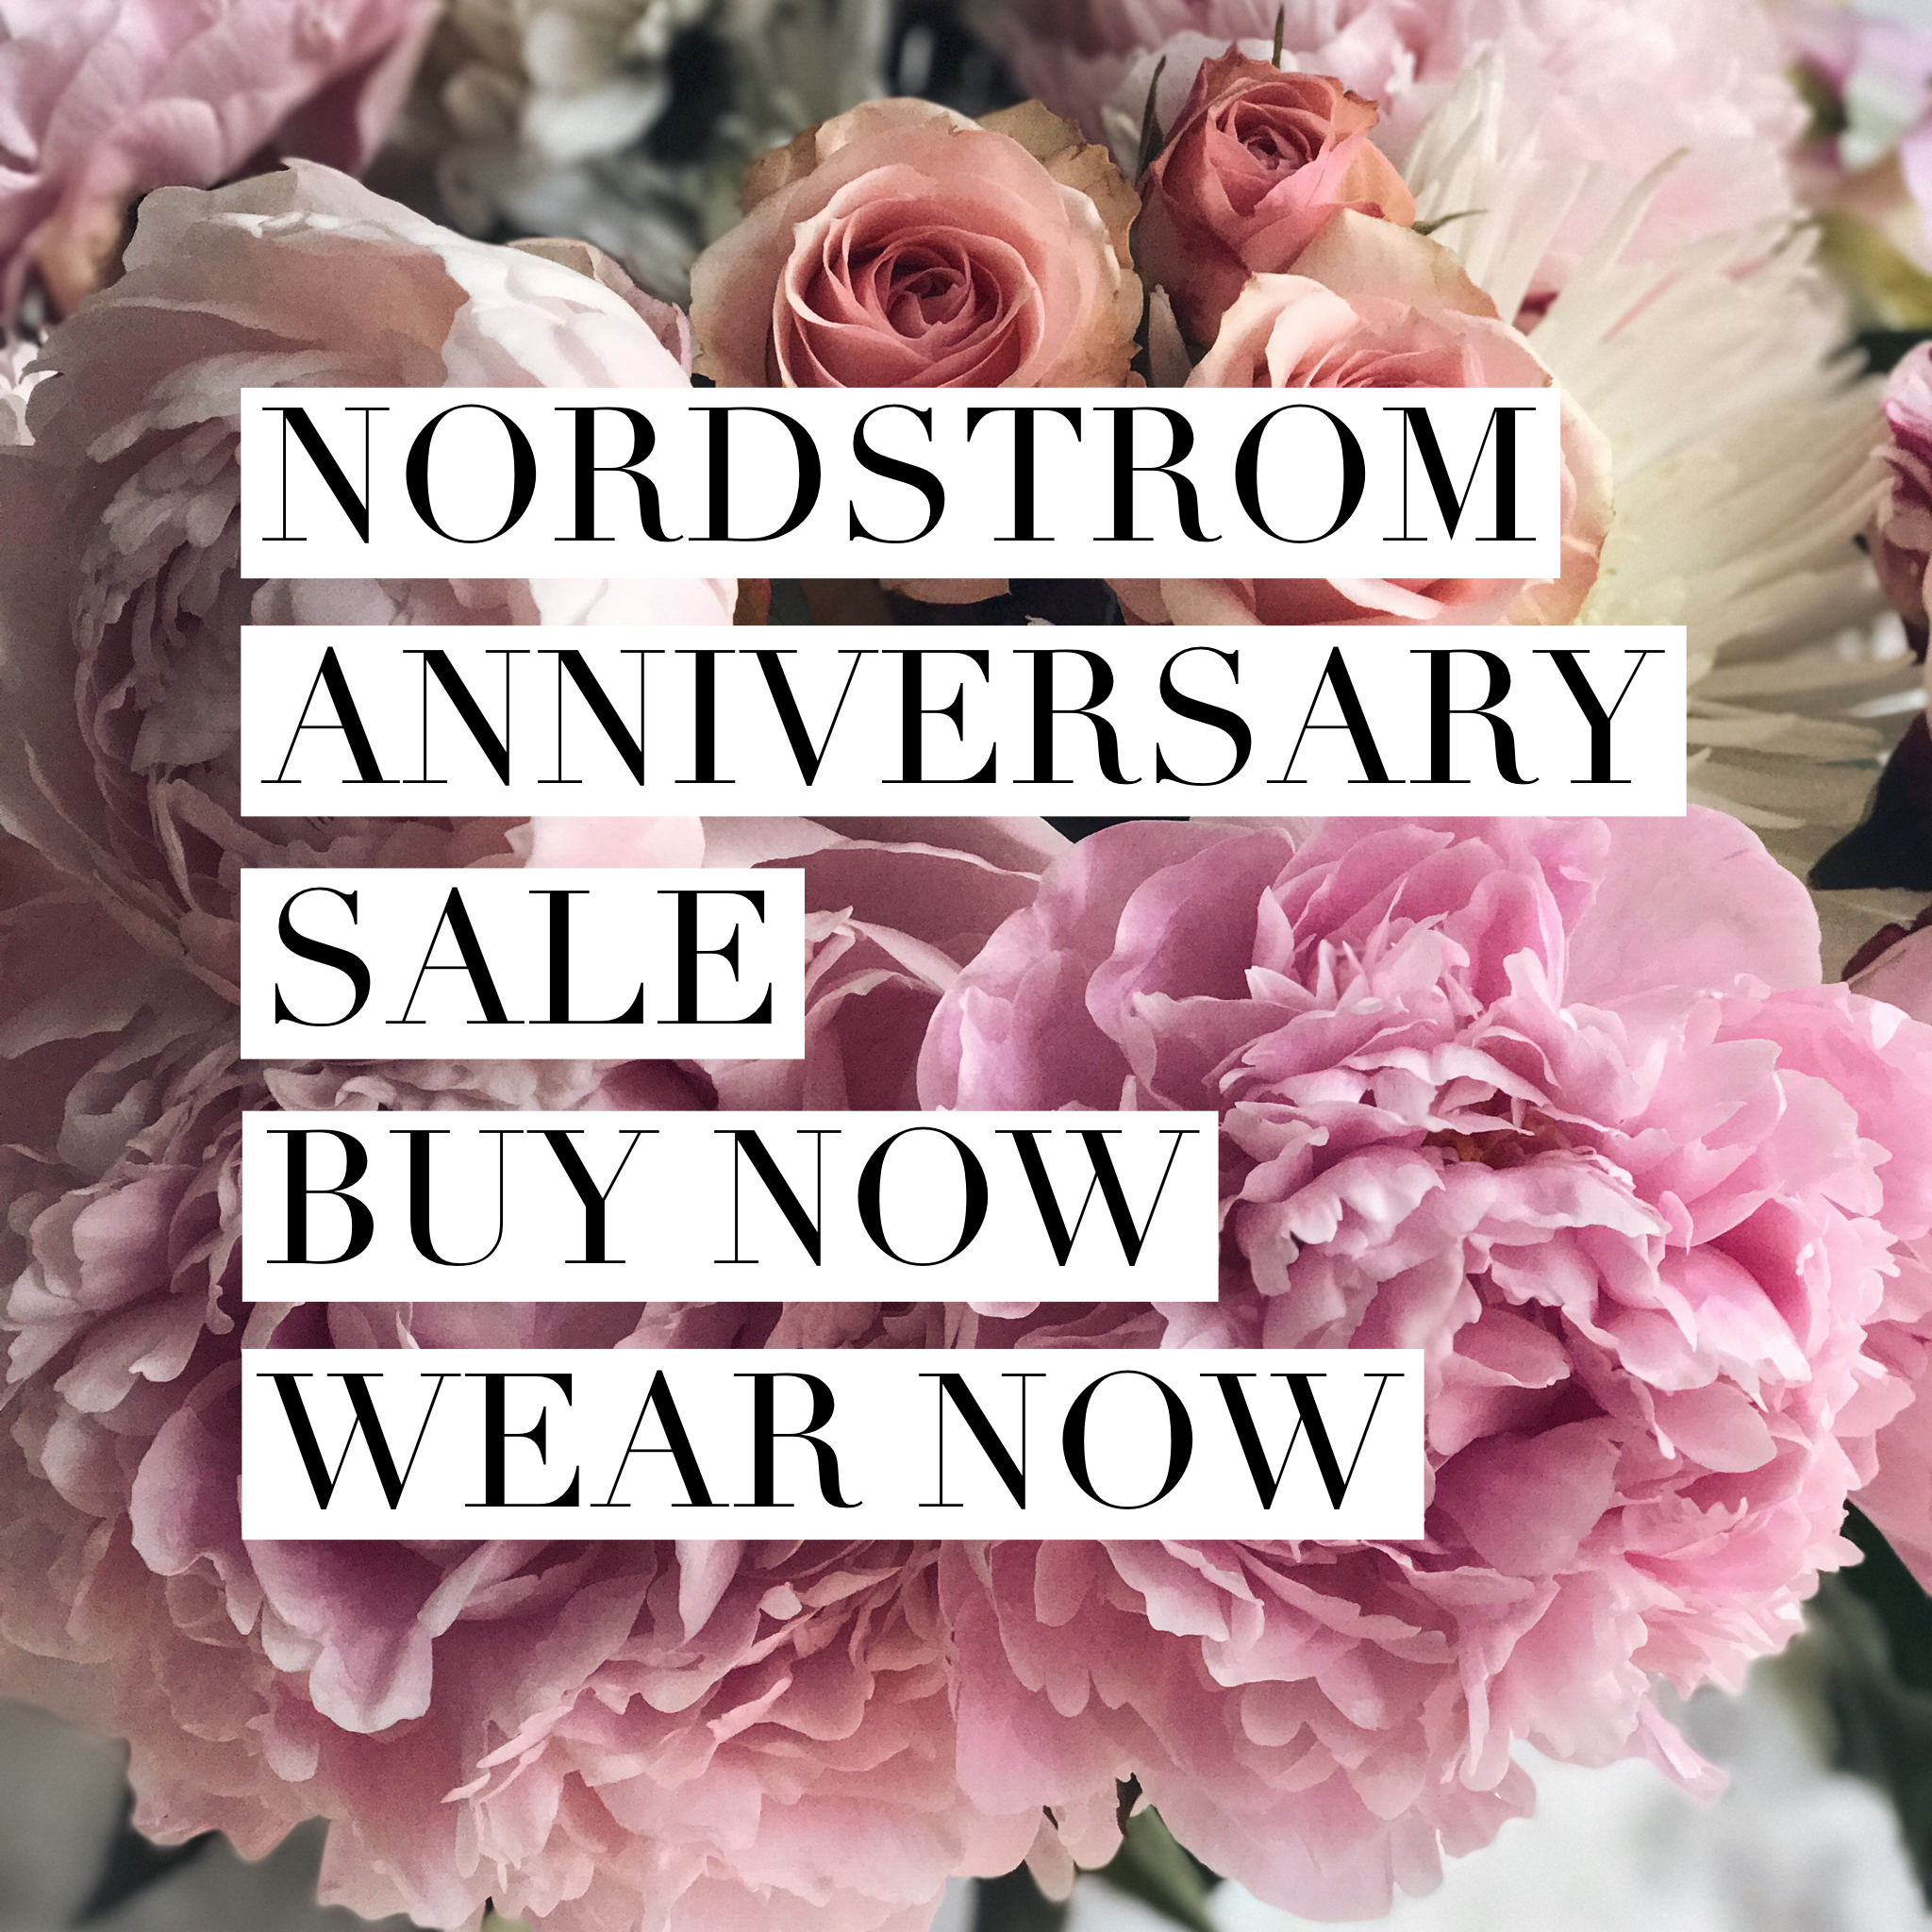 Nordstrom anniversary sale 2017, Nordstrom anniversary sale early access, buy now wear now